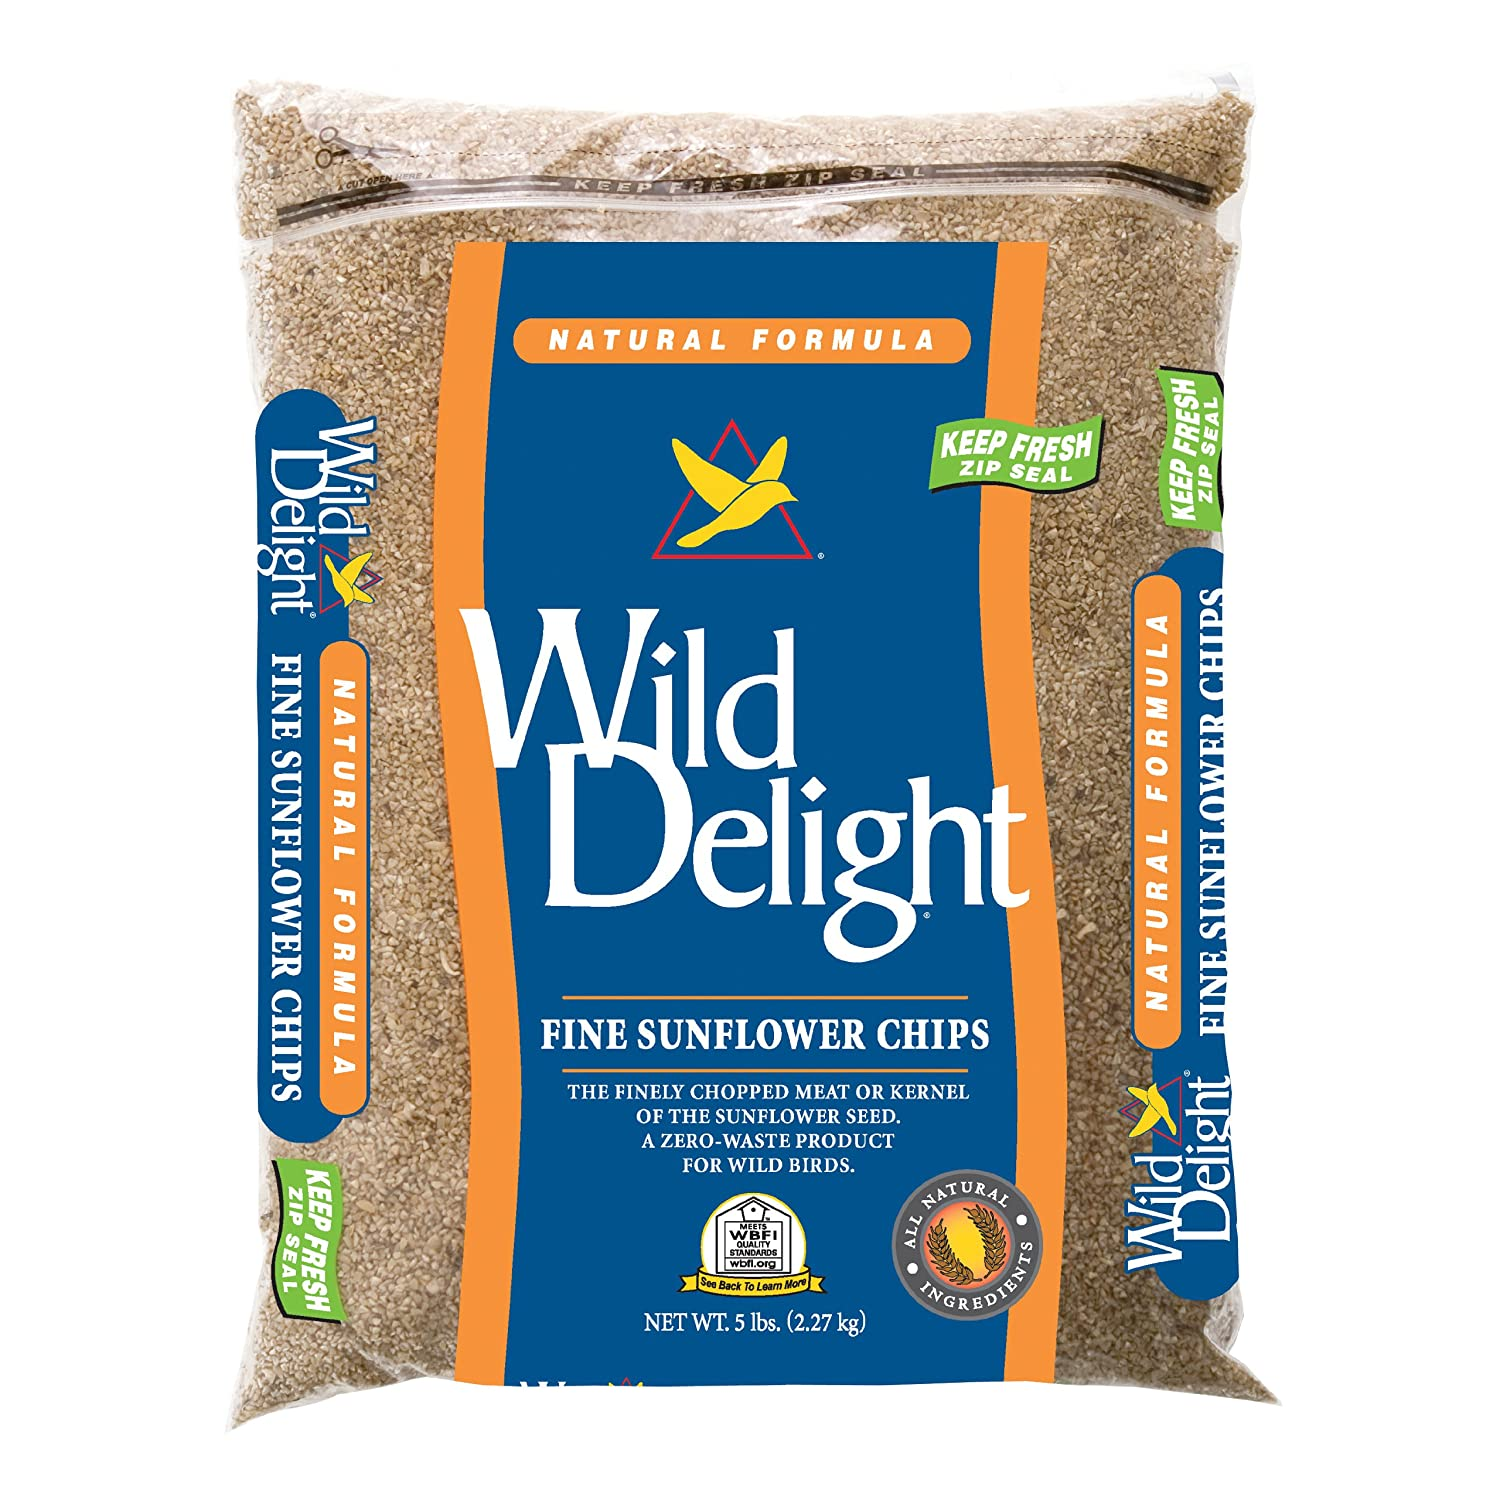 D & Commodities Ltd Wild Delight 385080 Natural Formula Fine Sunflower Chips, 5 Pounds D & D Commodities Ltd